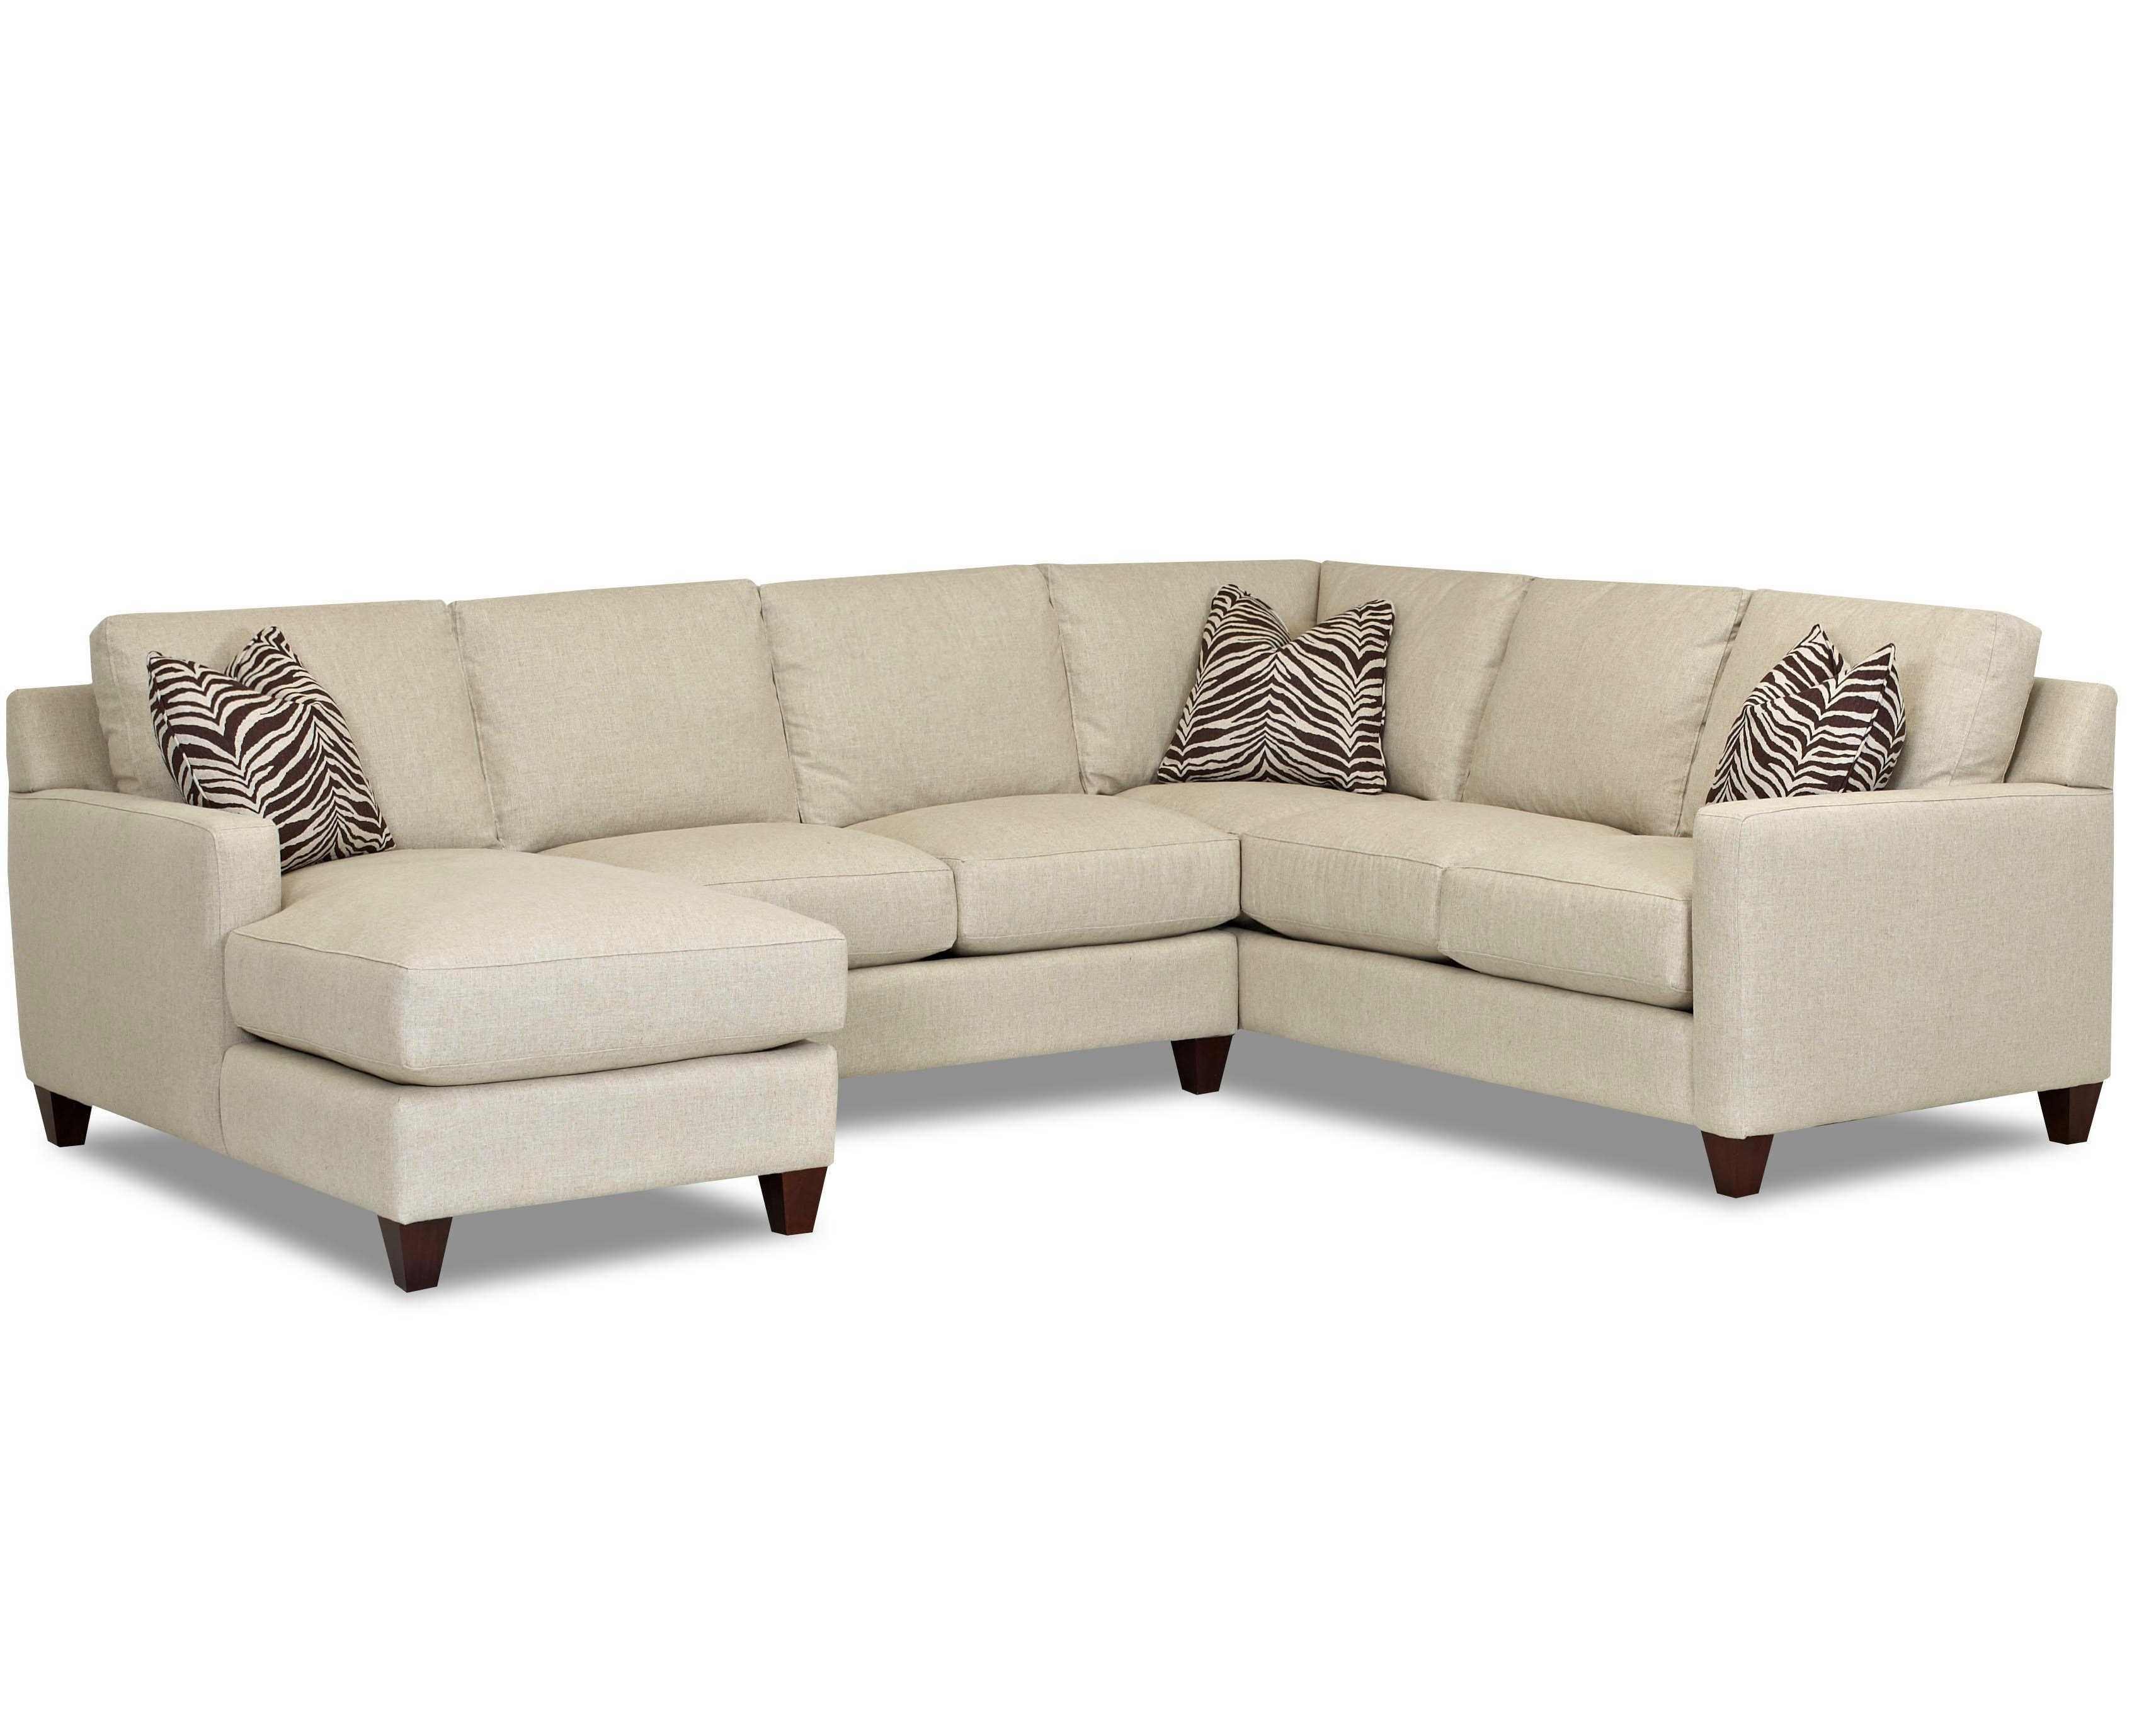 Contemporary Stationary Sectional With Track Arms, Right Side For Famous Right Arm Chaises (View 11 of 15)